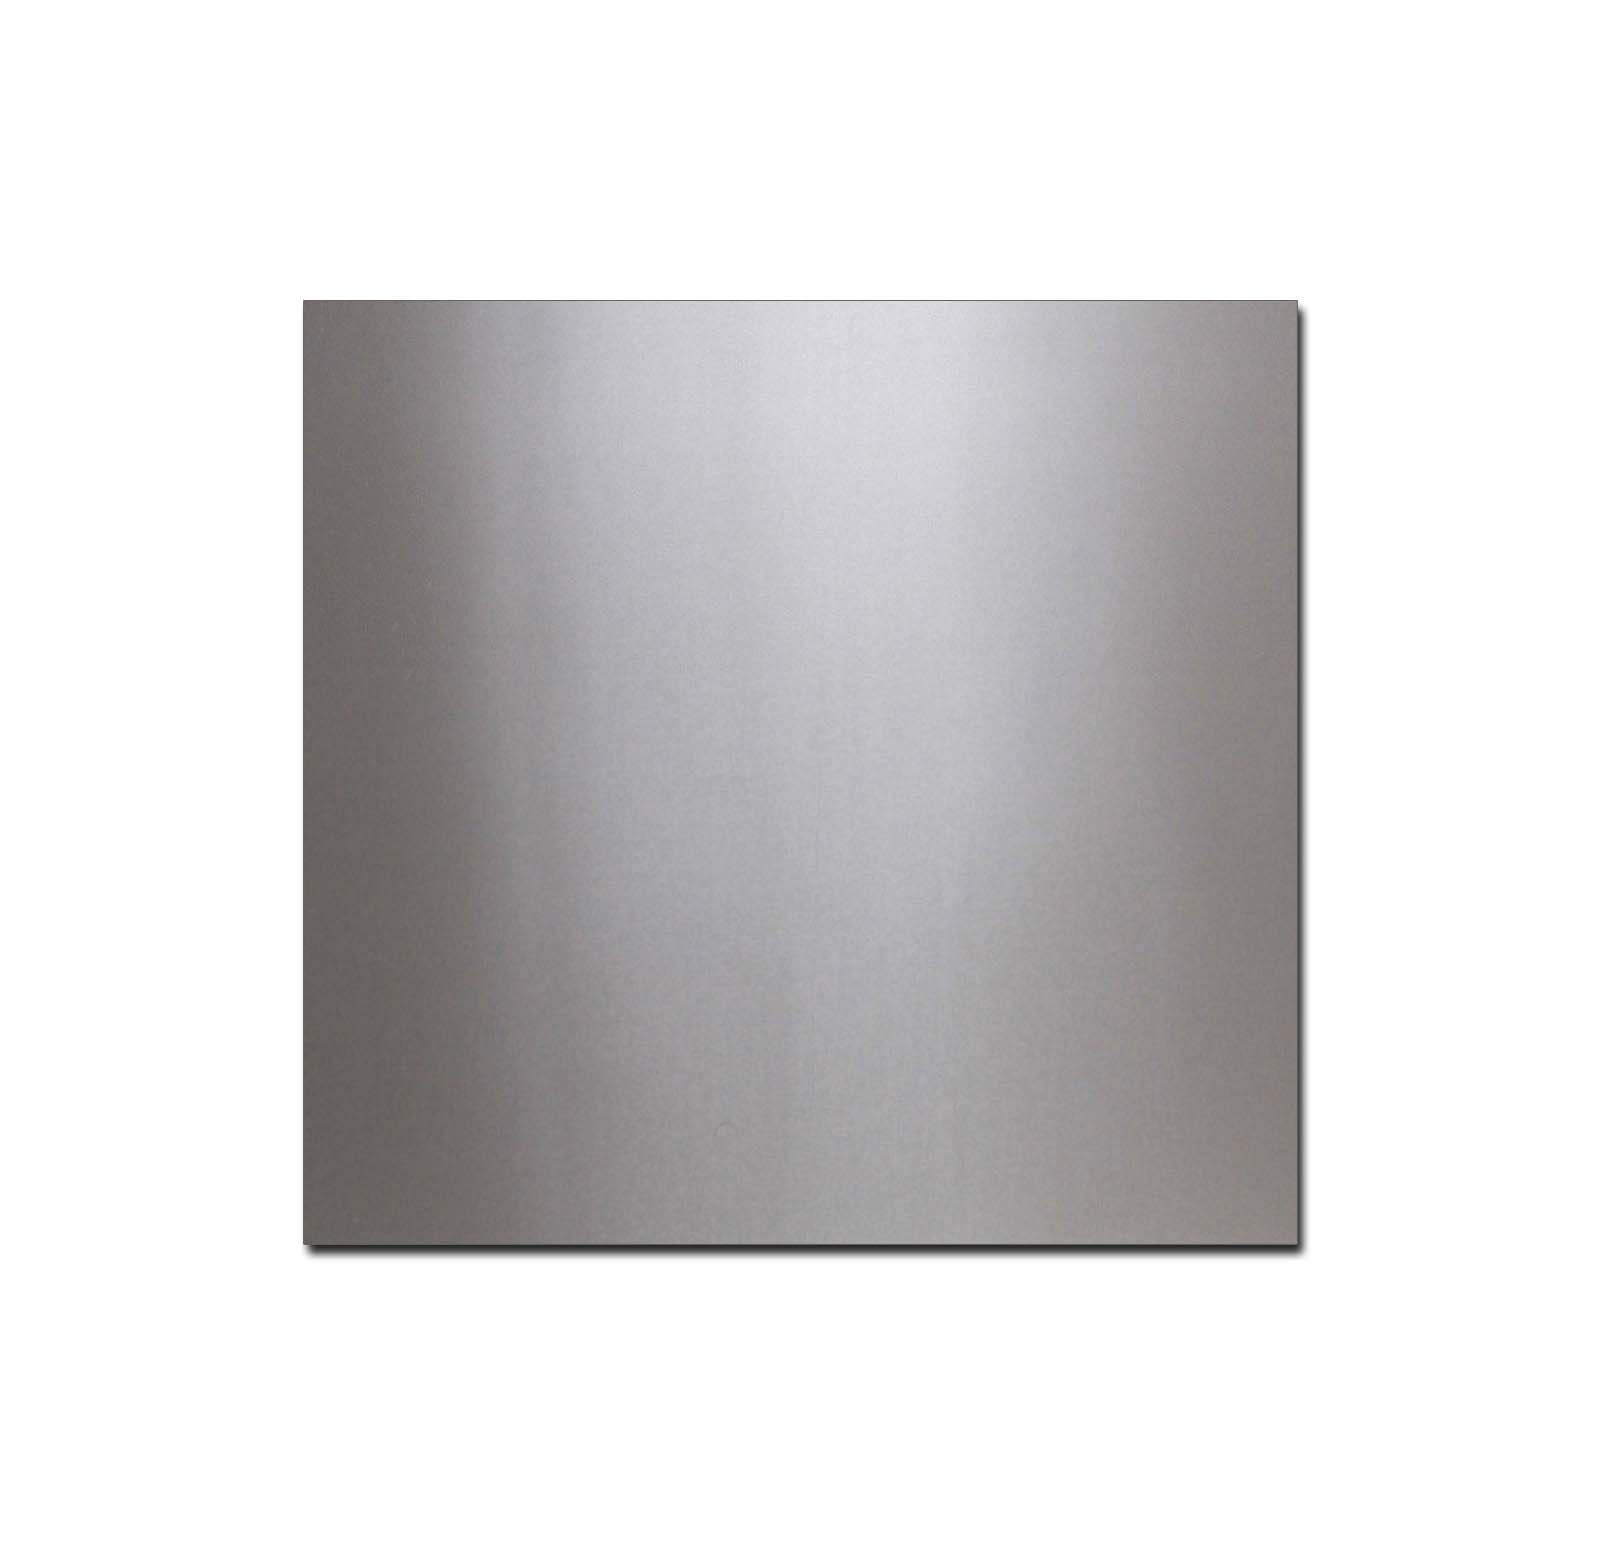 Kobe SSP30 KOBE 30-Inch Stainless Steel Back Splash Panel